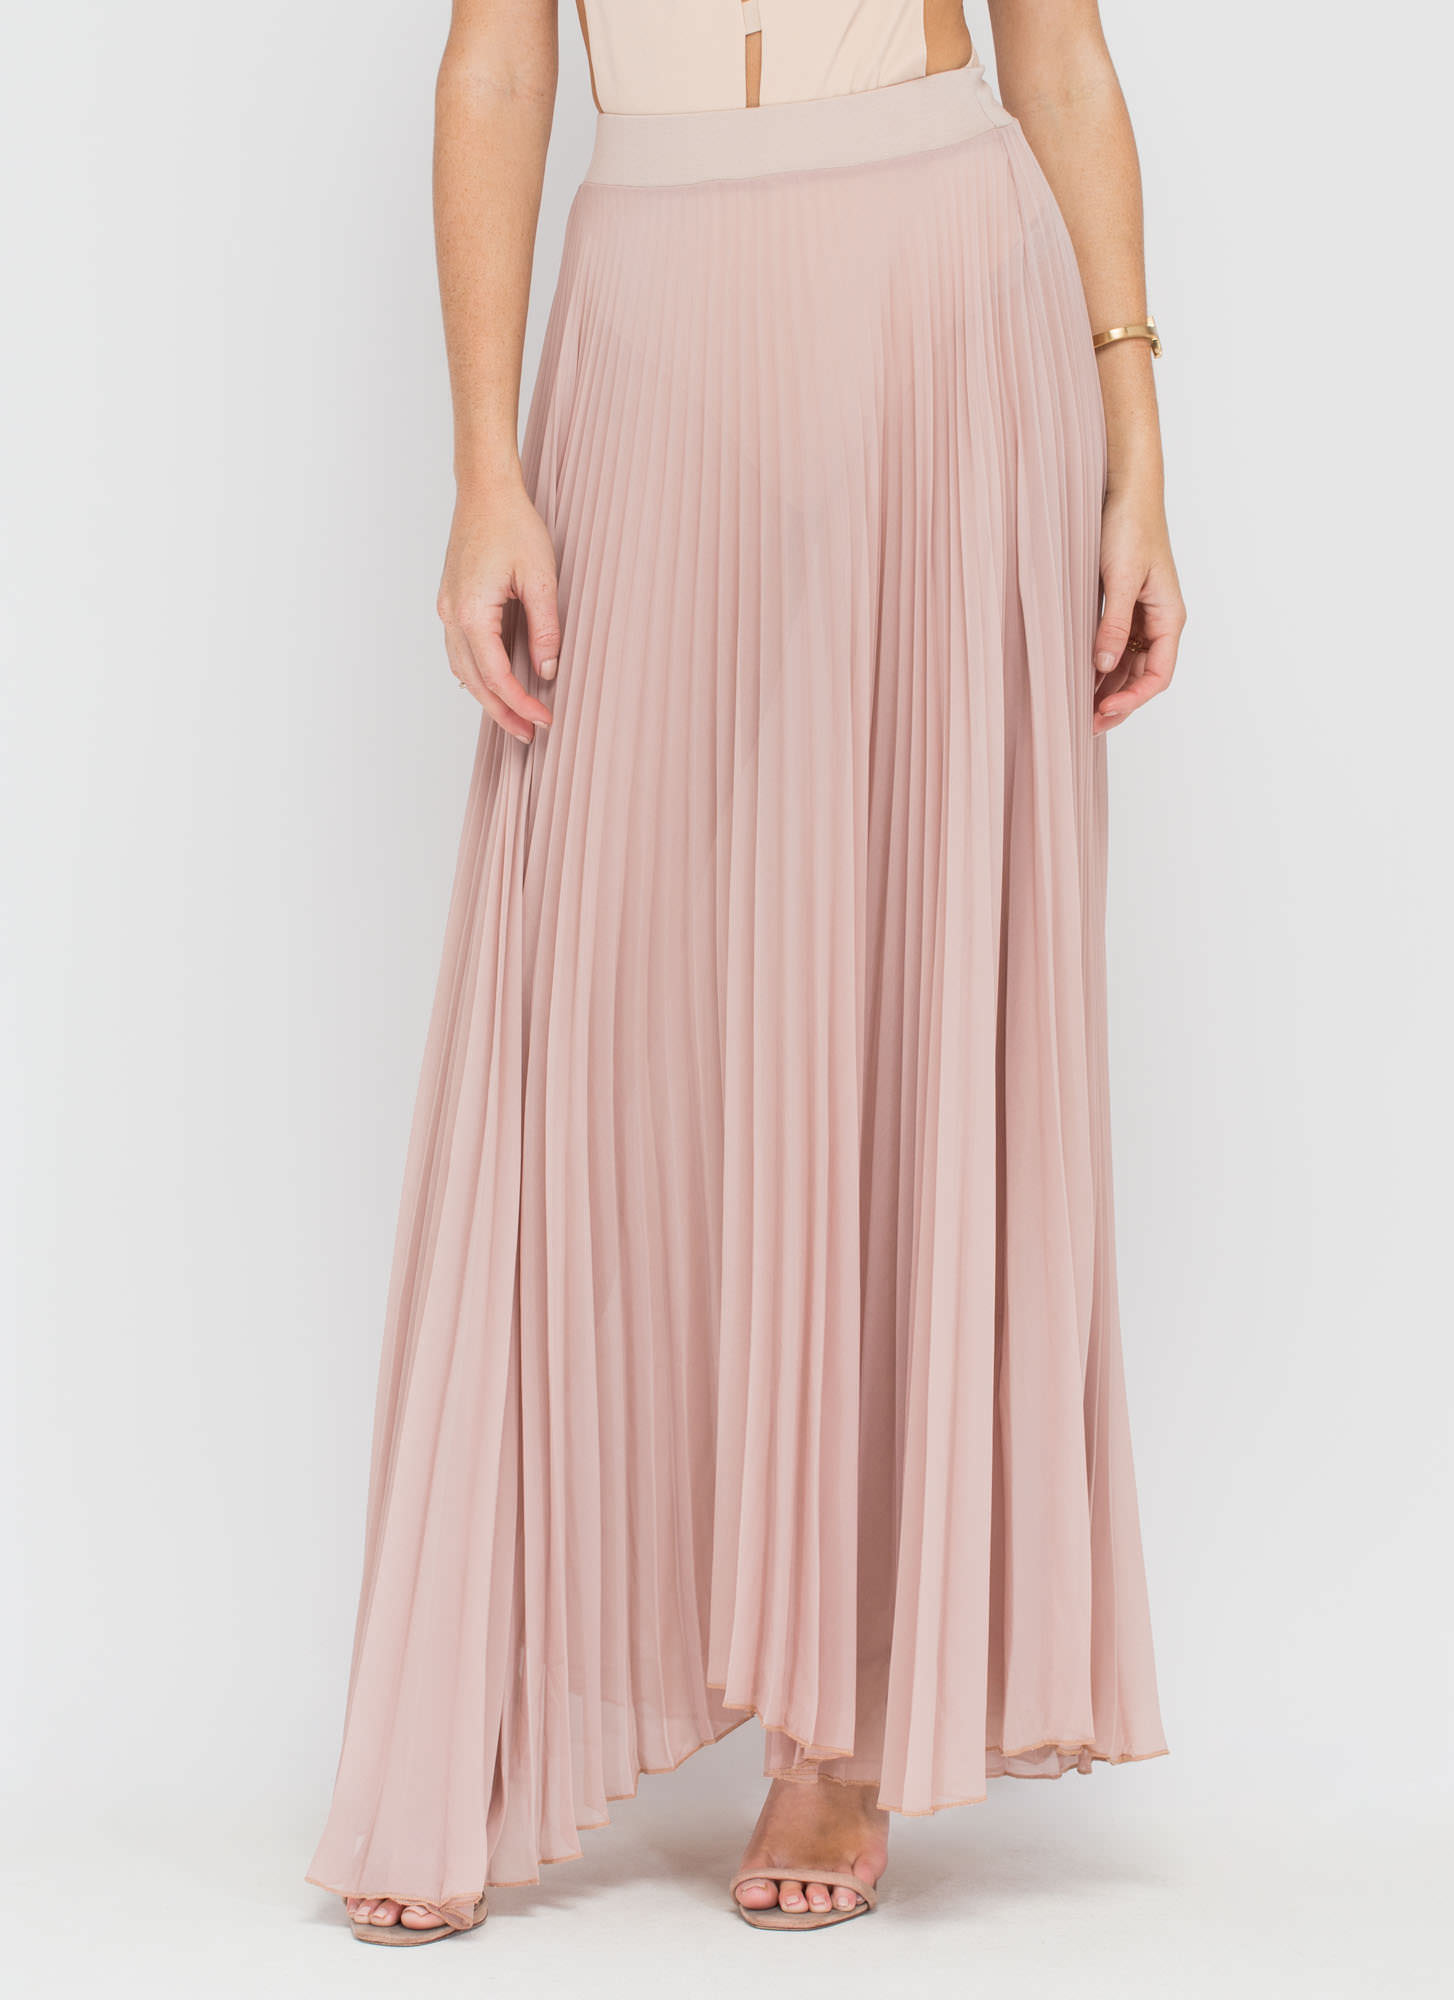 Act Accordionly Pleated Maxi Skirt NUDE